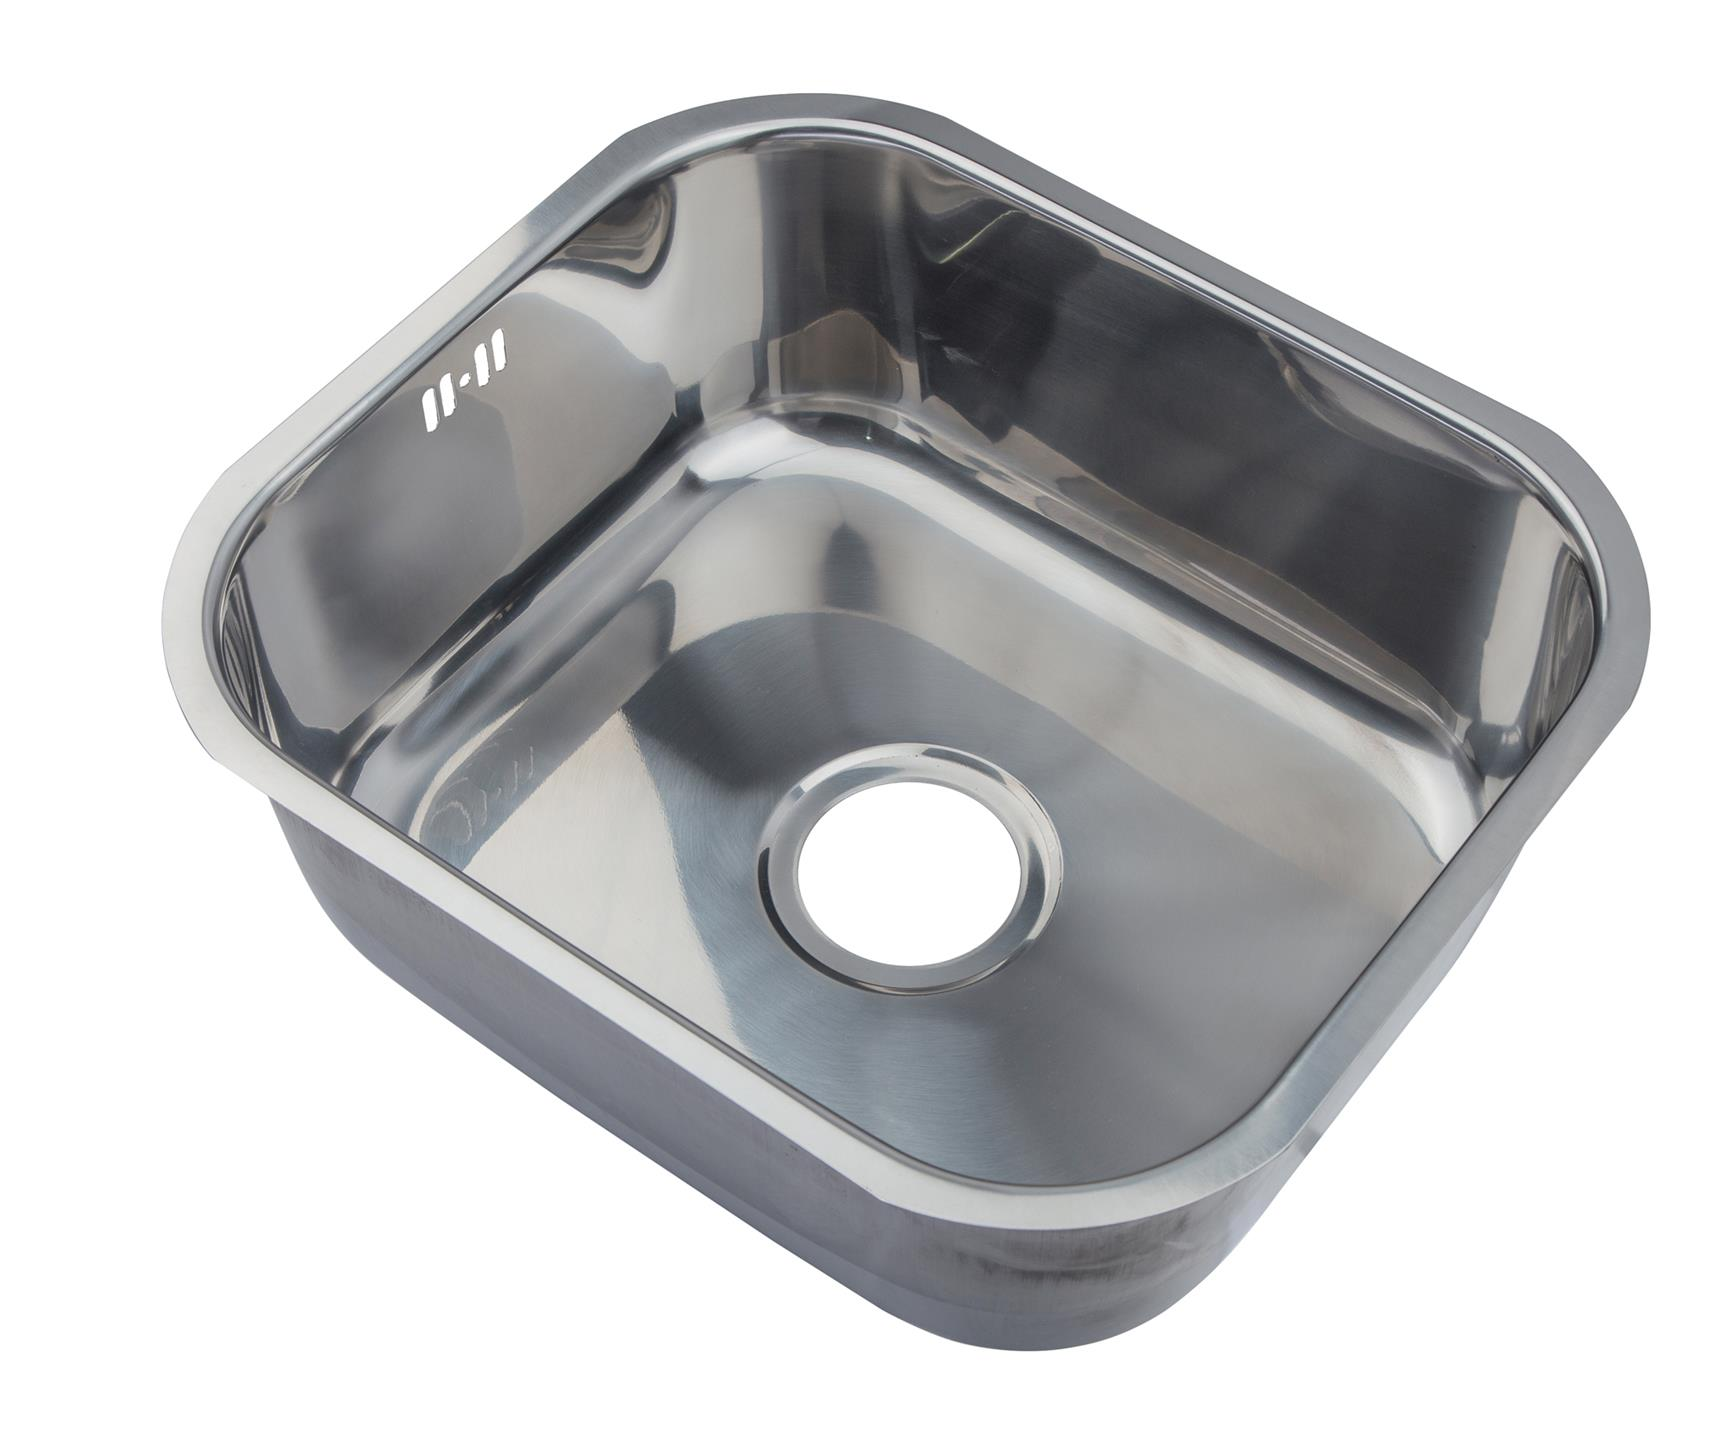 Stainless Steel Undermount Under Counter Kitchen Sinks Choice 1 0 OR 1 5 OR 2